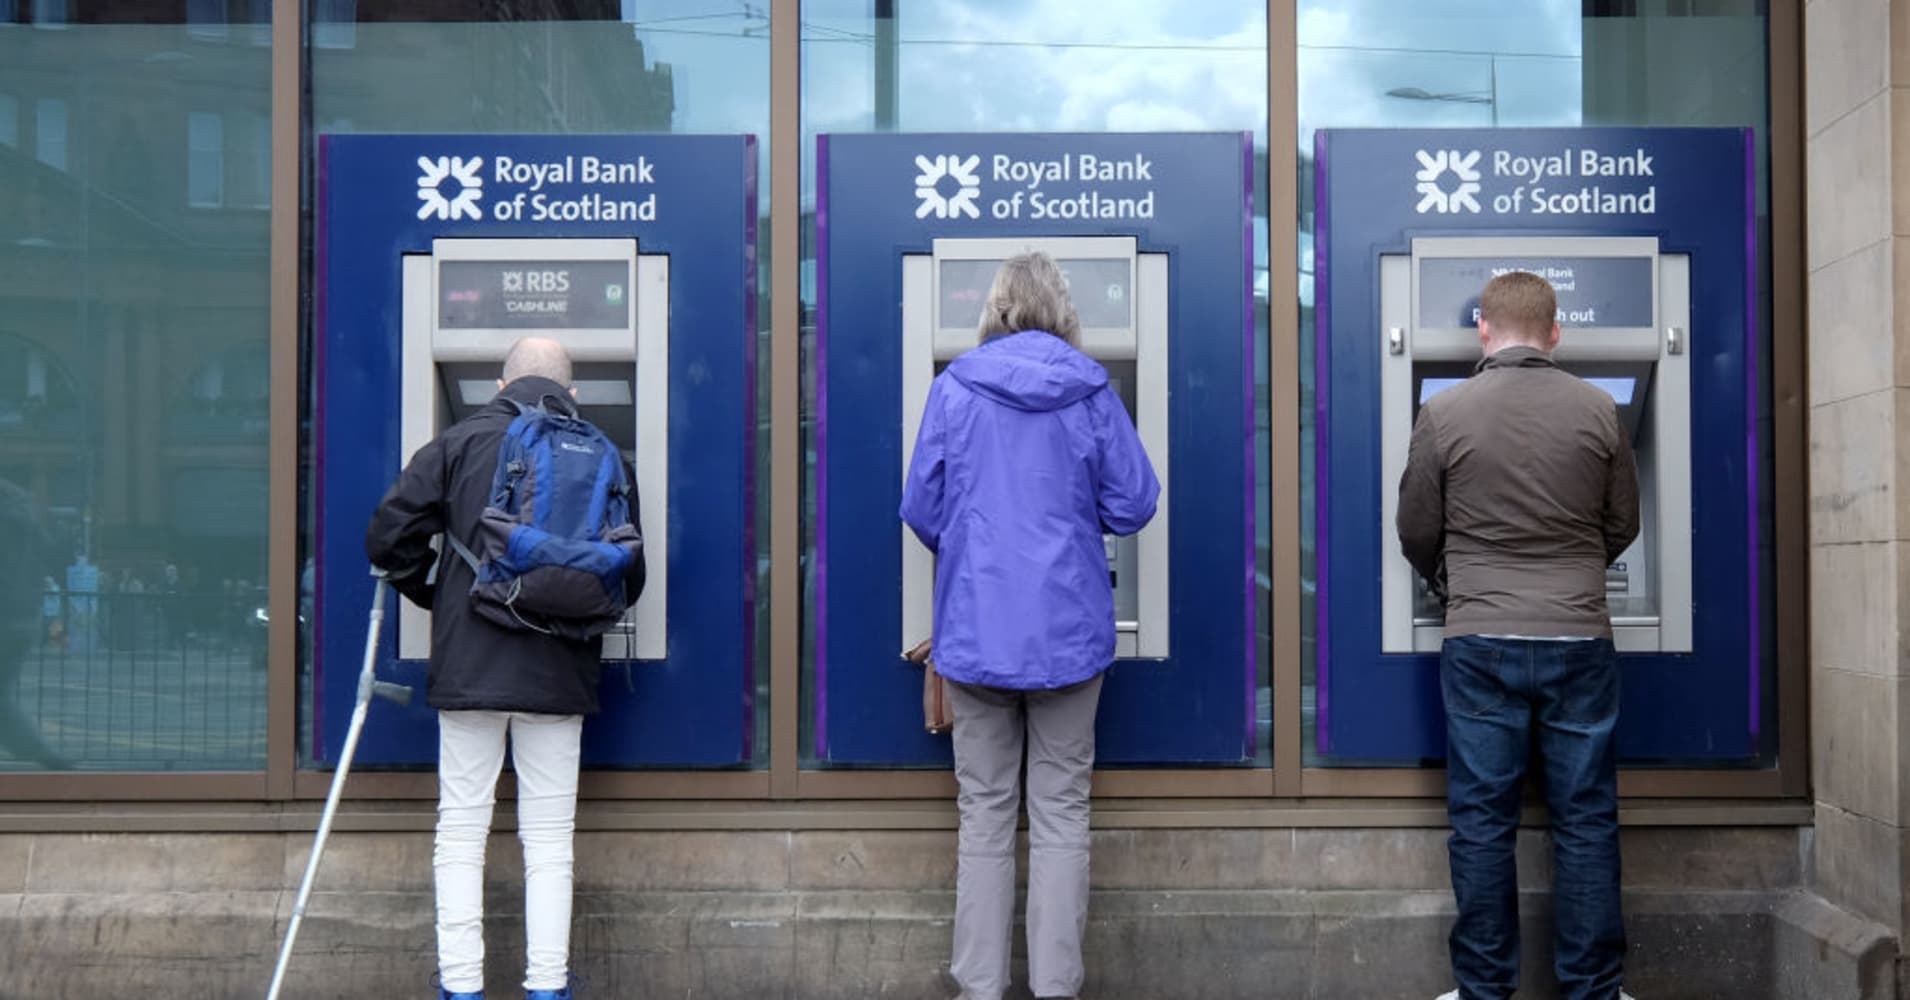 RBS share price rallies as group agrees $4.9bn U.S. mortgage settlement